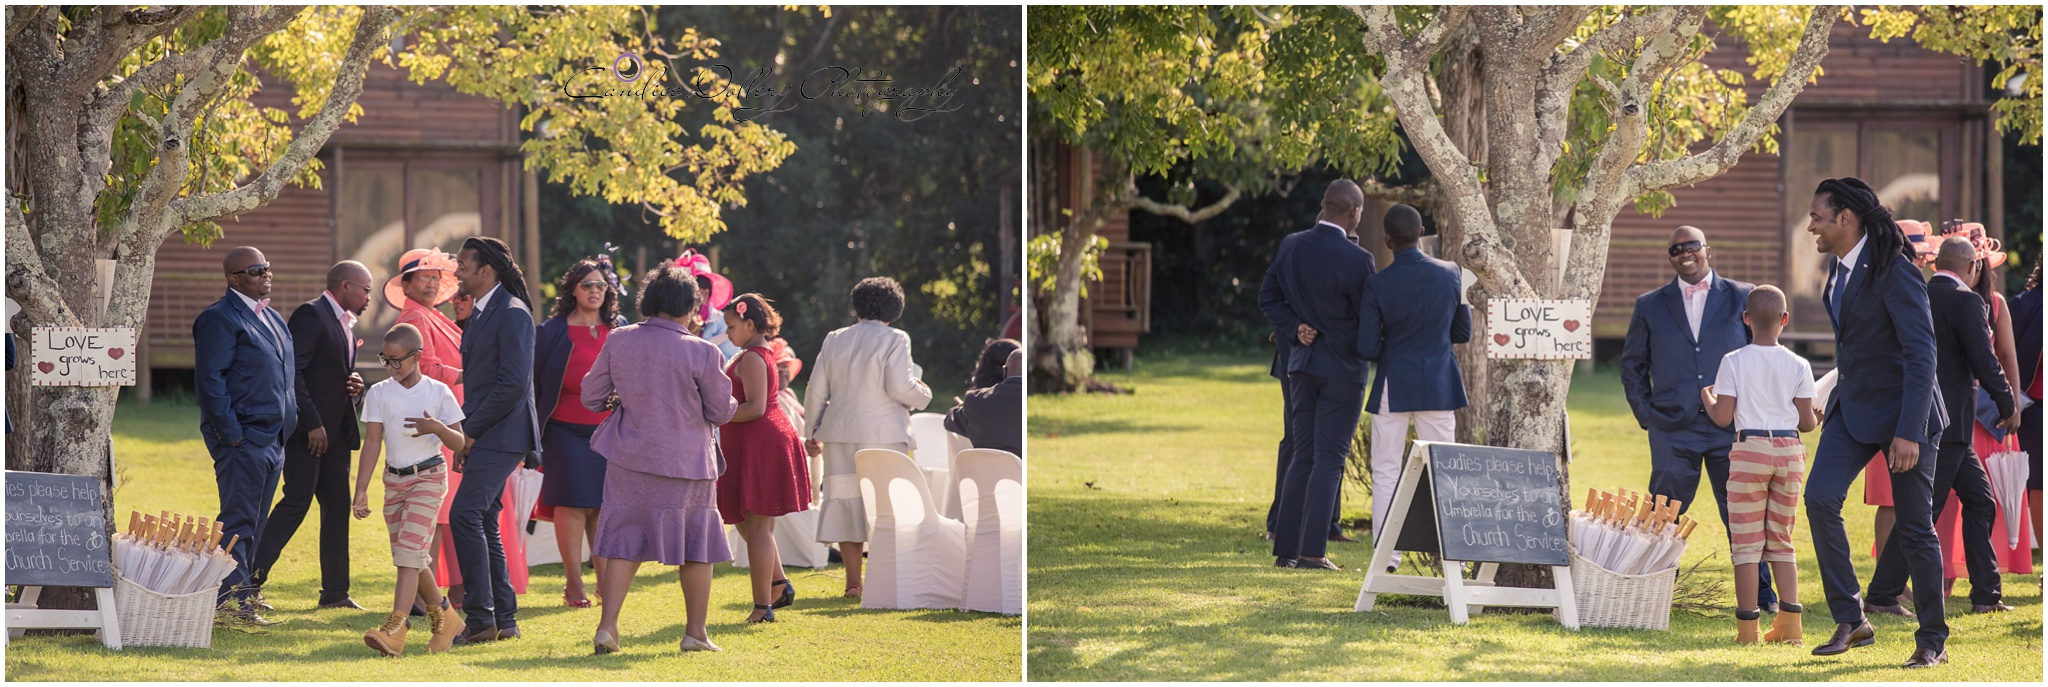 Wedding Gonubie Manor Thola & Phili-Candice Dollery Photograhy_4188